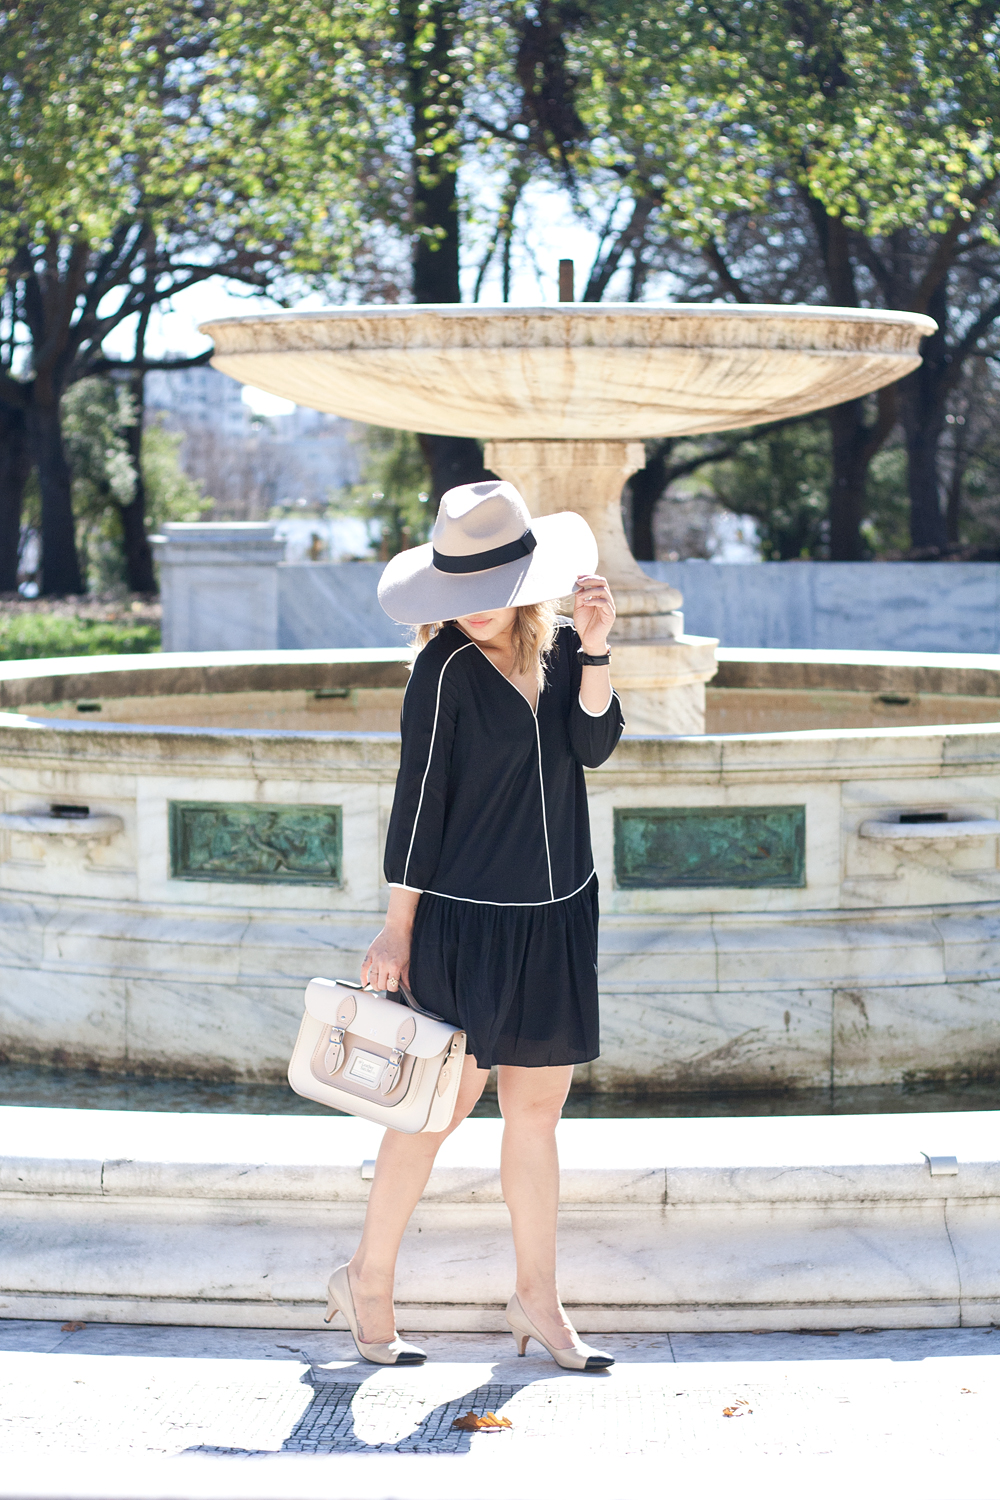 06cooperandella-dress-hat-ysl-style-fashion-sf